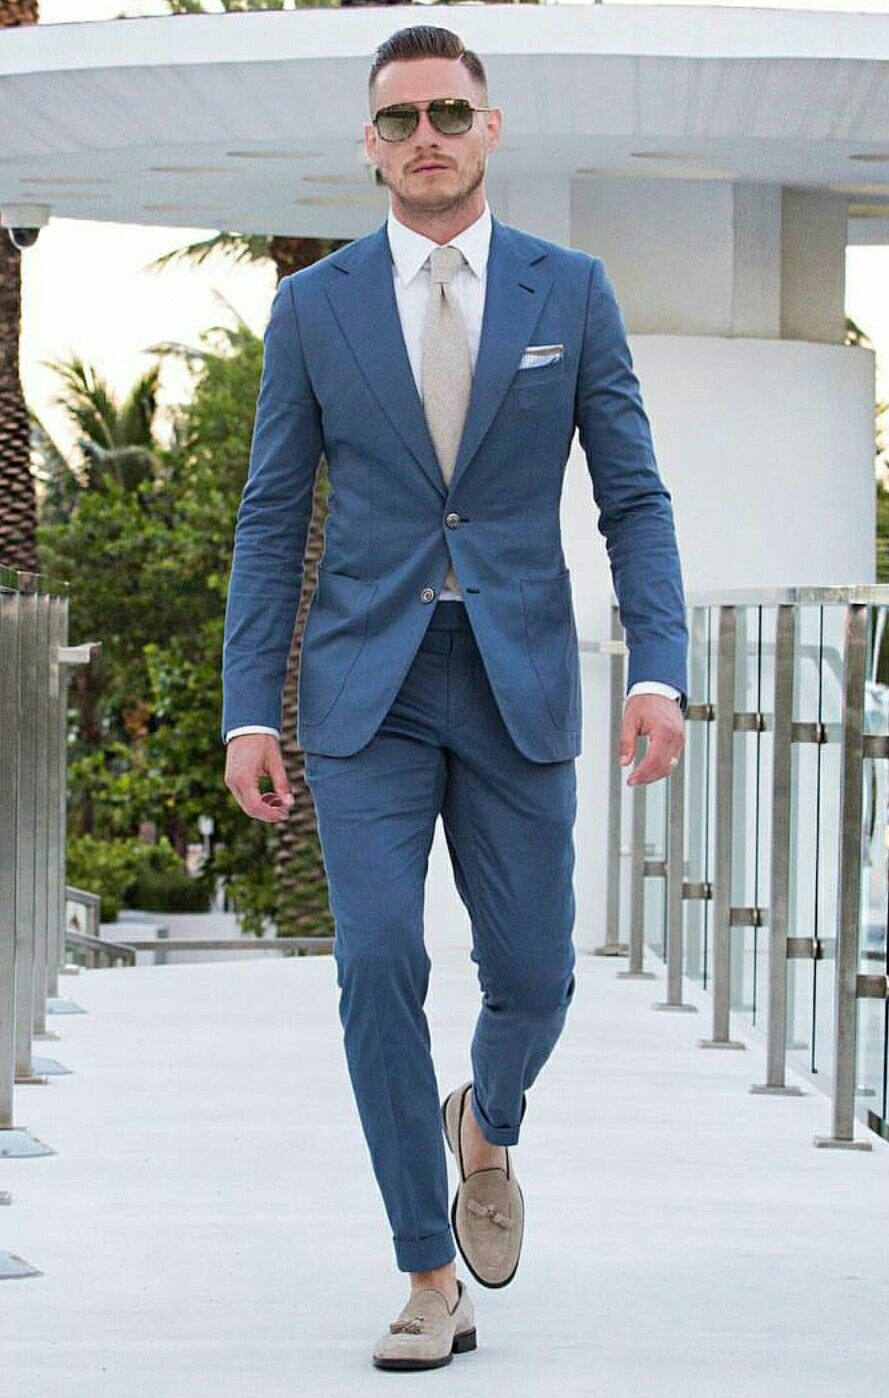 Pin by MontrellDemet on Men in Blue Suits | Pinterest